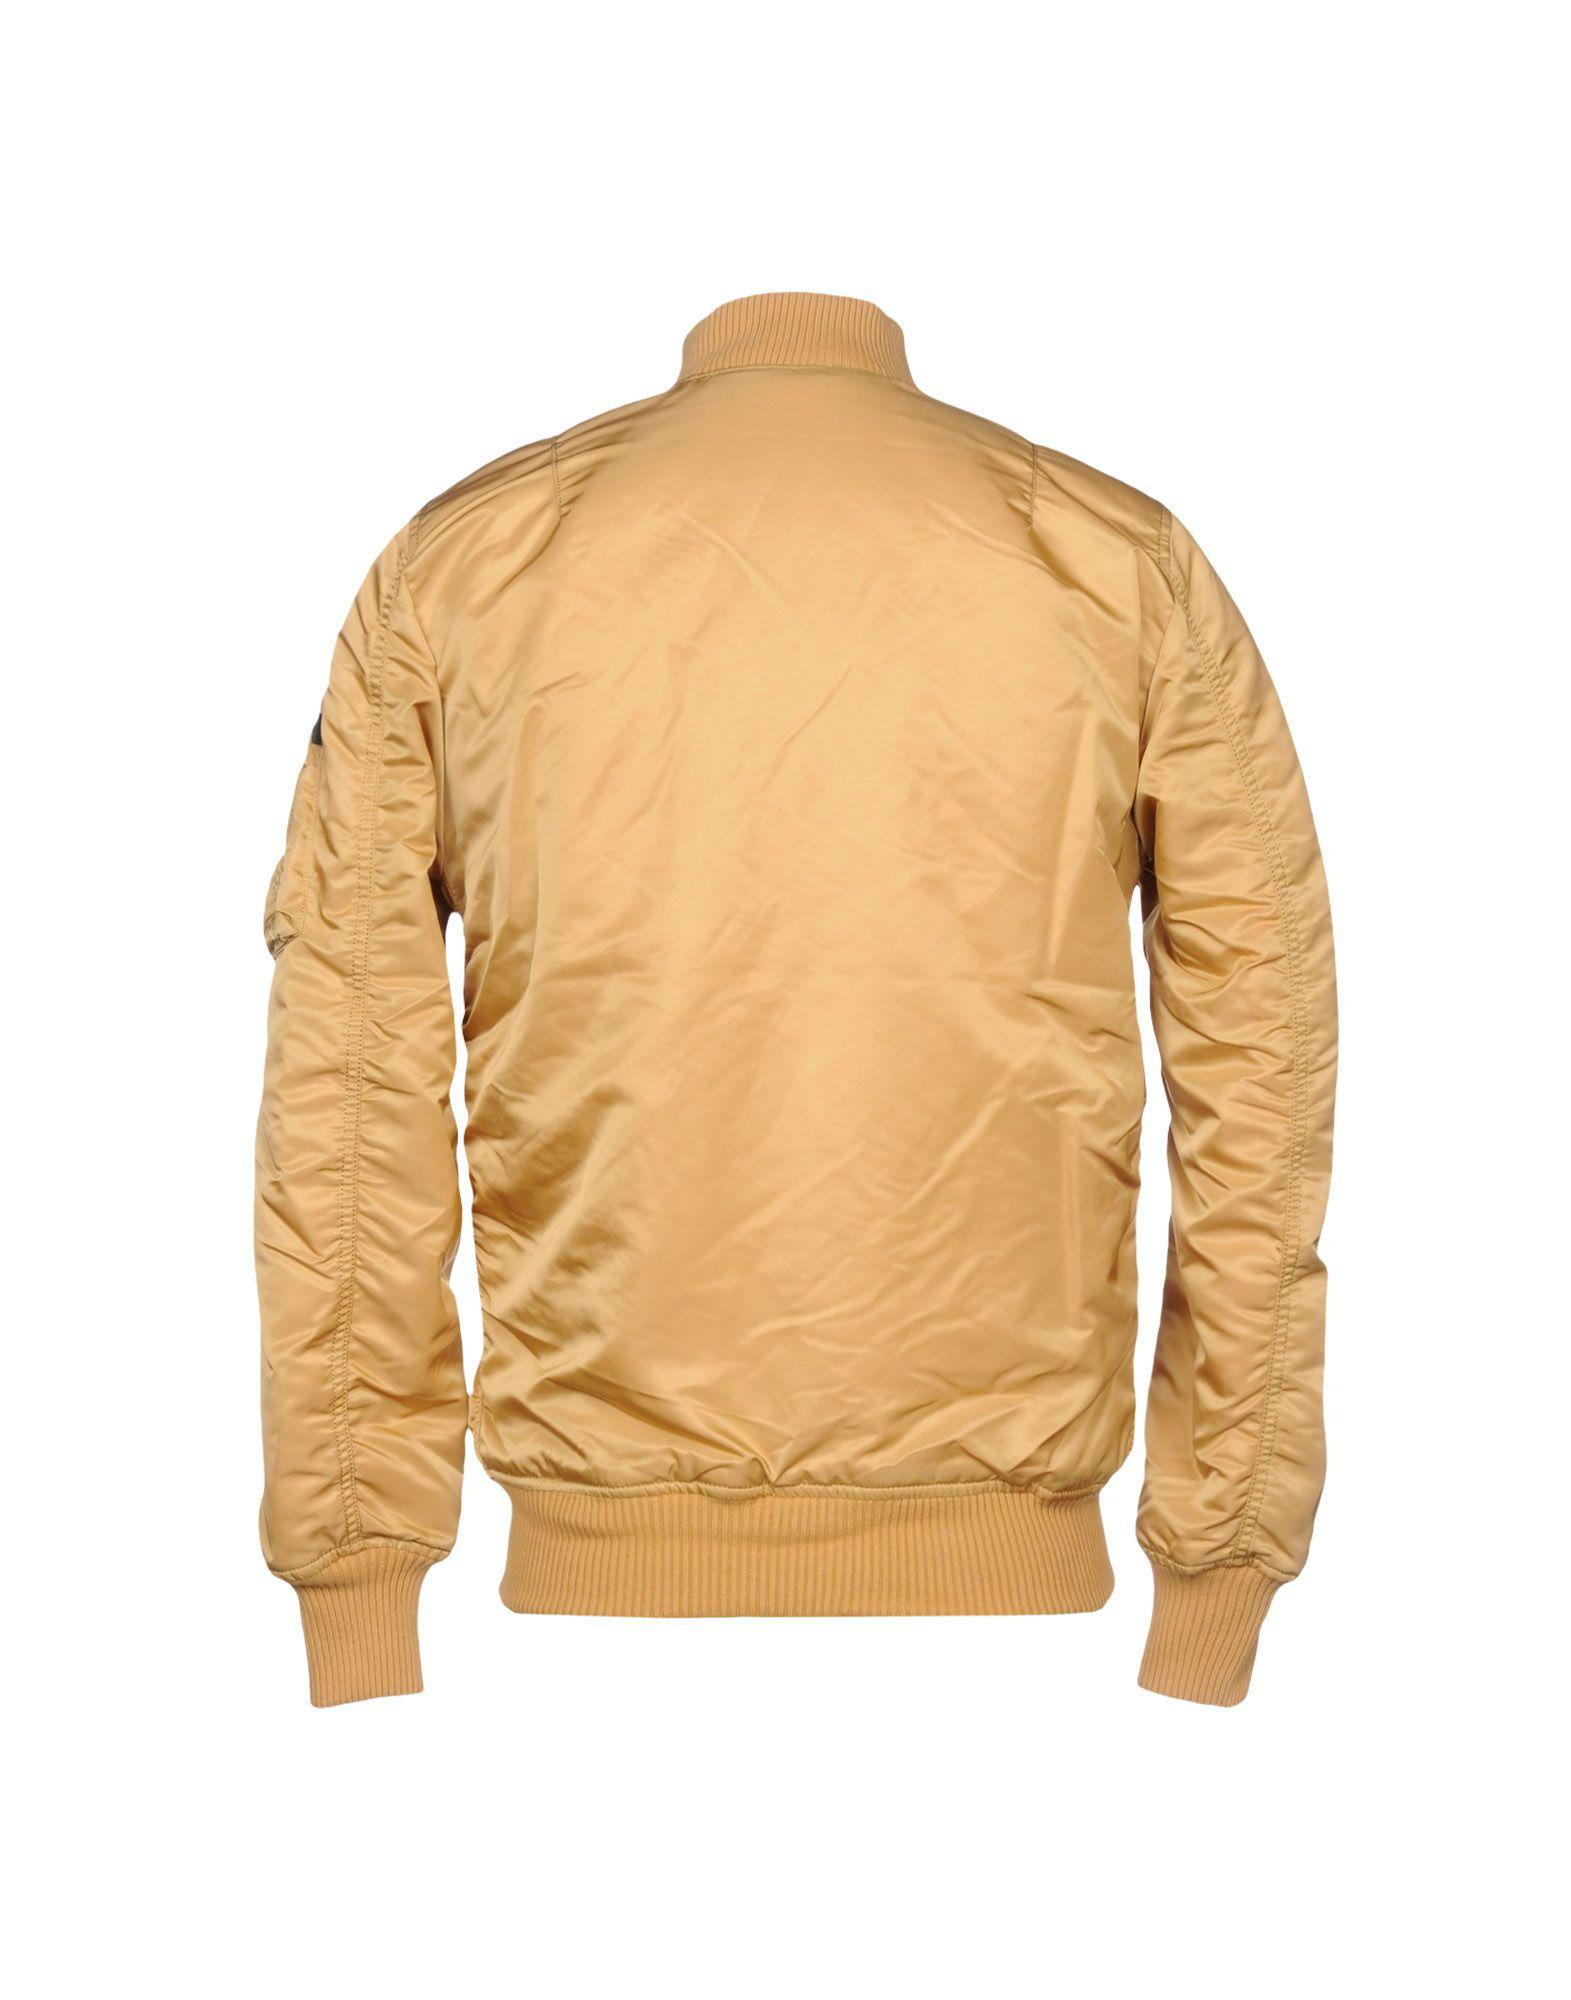 Alpha Industries Leather Jacket in Sand (Natural) for Men